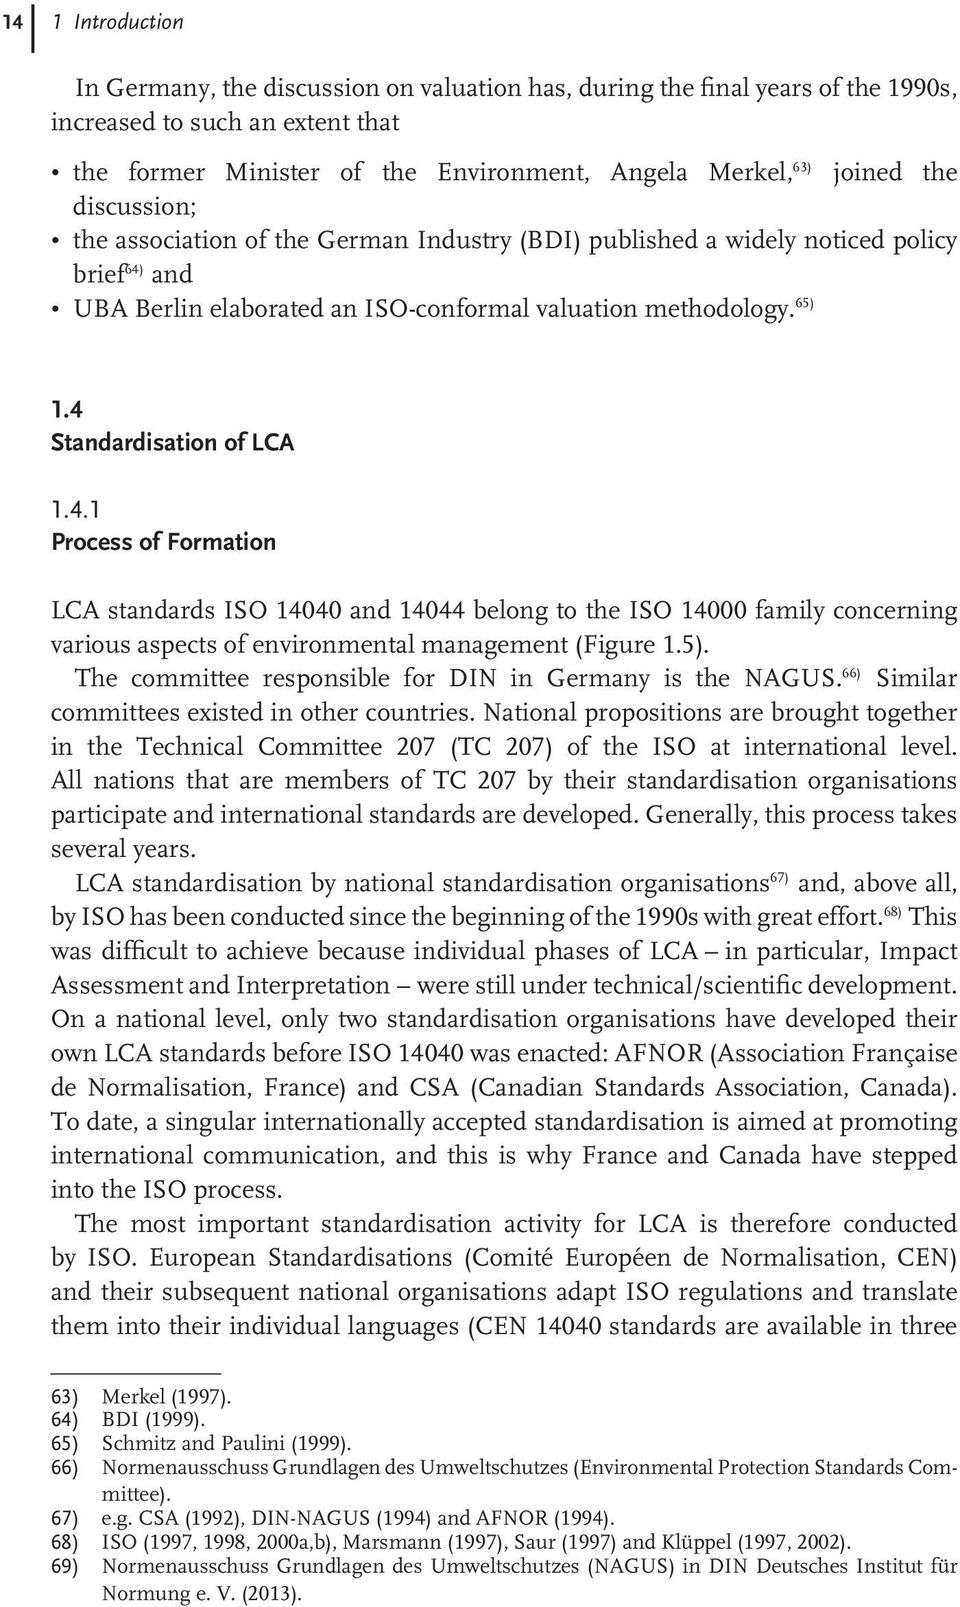 4 Standardisation of LCA 1.4.1 Process of Formation LCA standards ISO 14040 and 14044 belong to the ISO 14000 family concerning various aspects of management (Figure 1.5).